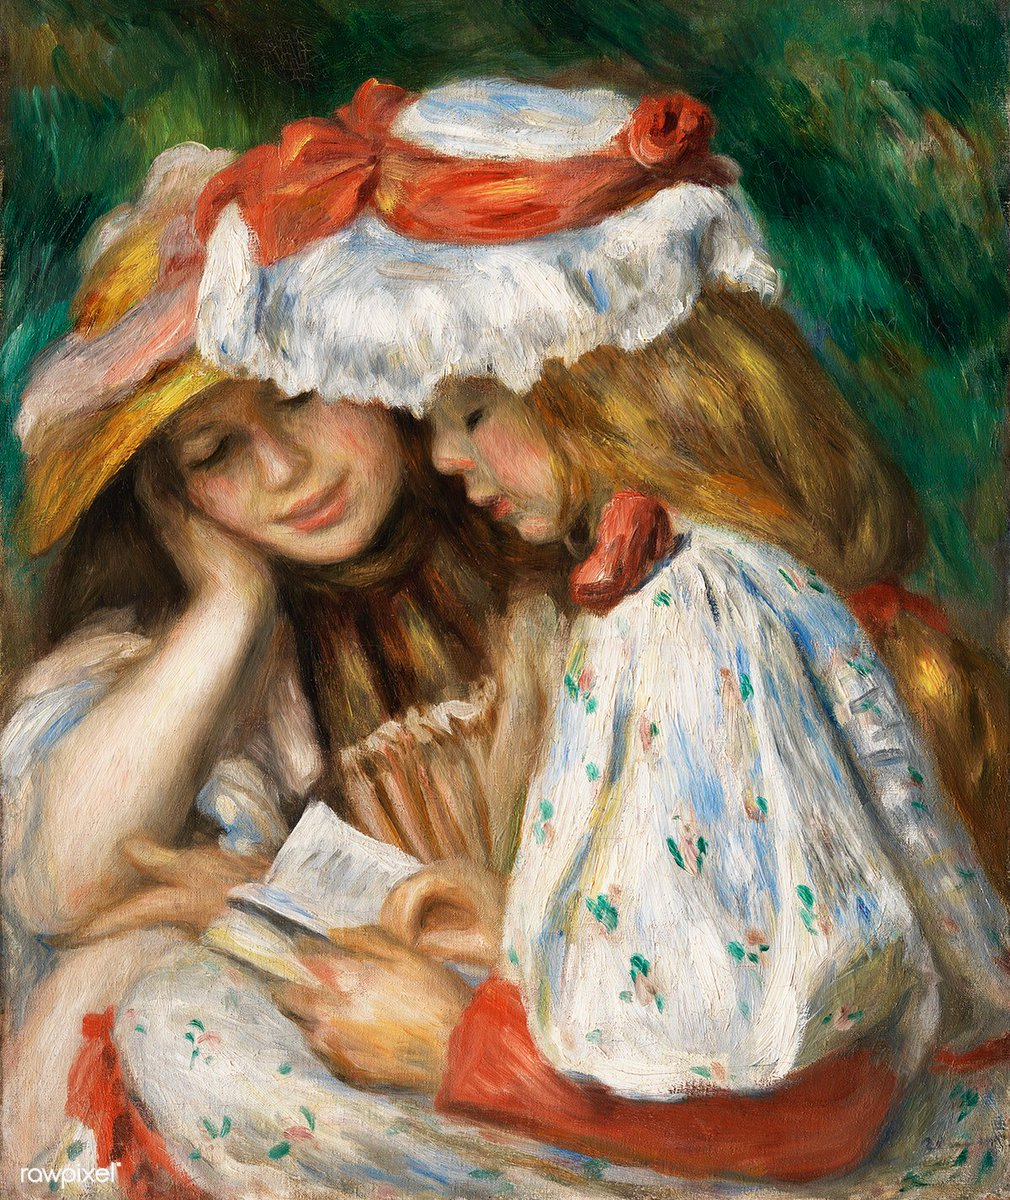 Two Girls Reading (c. 1890–1891) by Pierre-Auguste Renoir. Original from The Los Angeles County Museum of Art. Digitally enhanced by rawpixel. Download this image: http://rawpixel.com/board/894911/pierre-auguste-renoir…